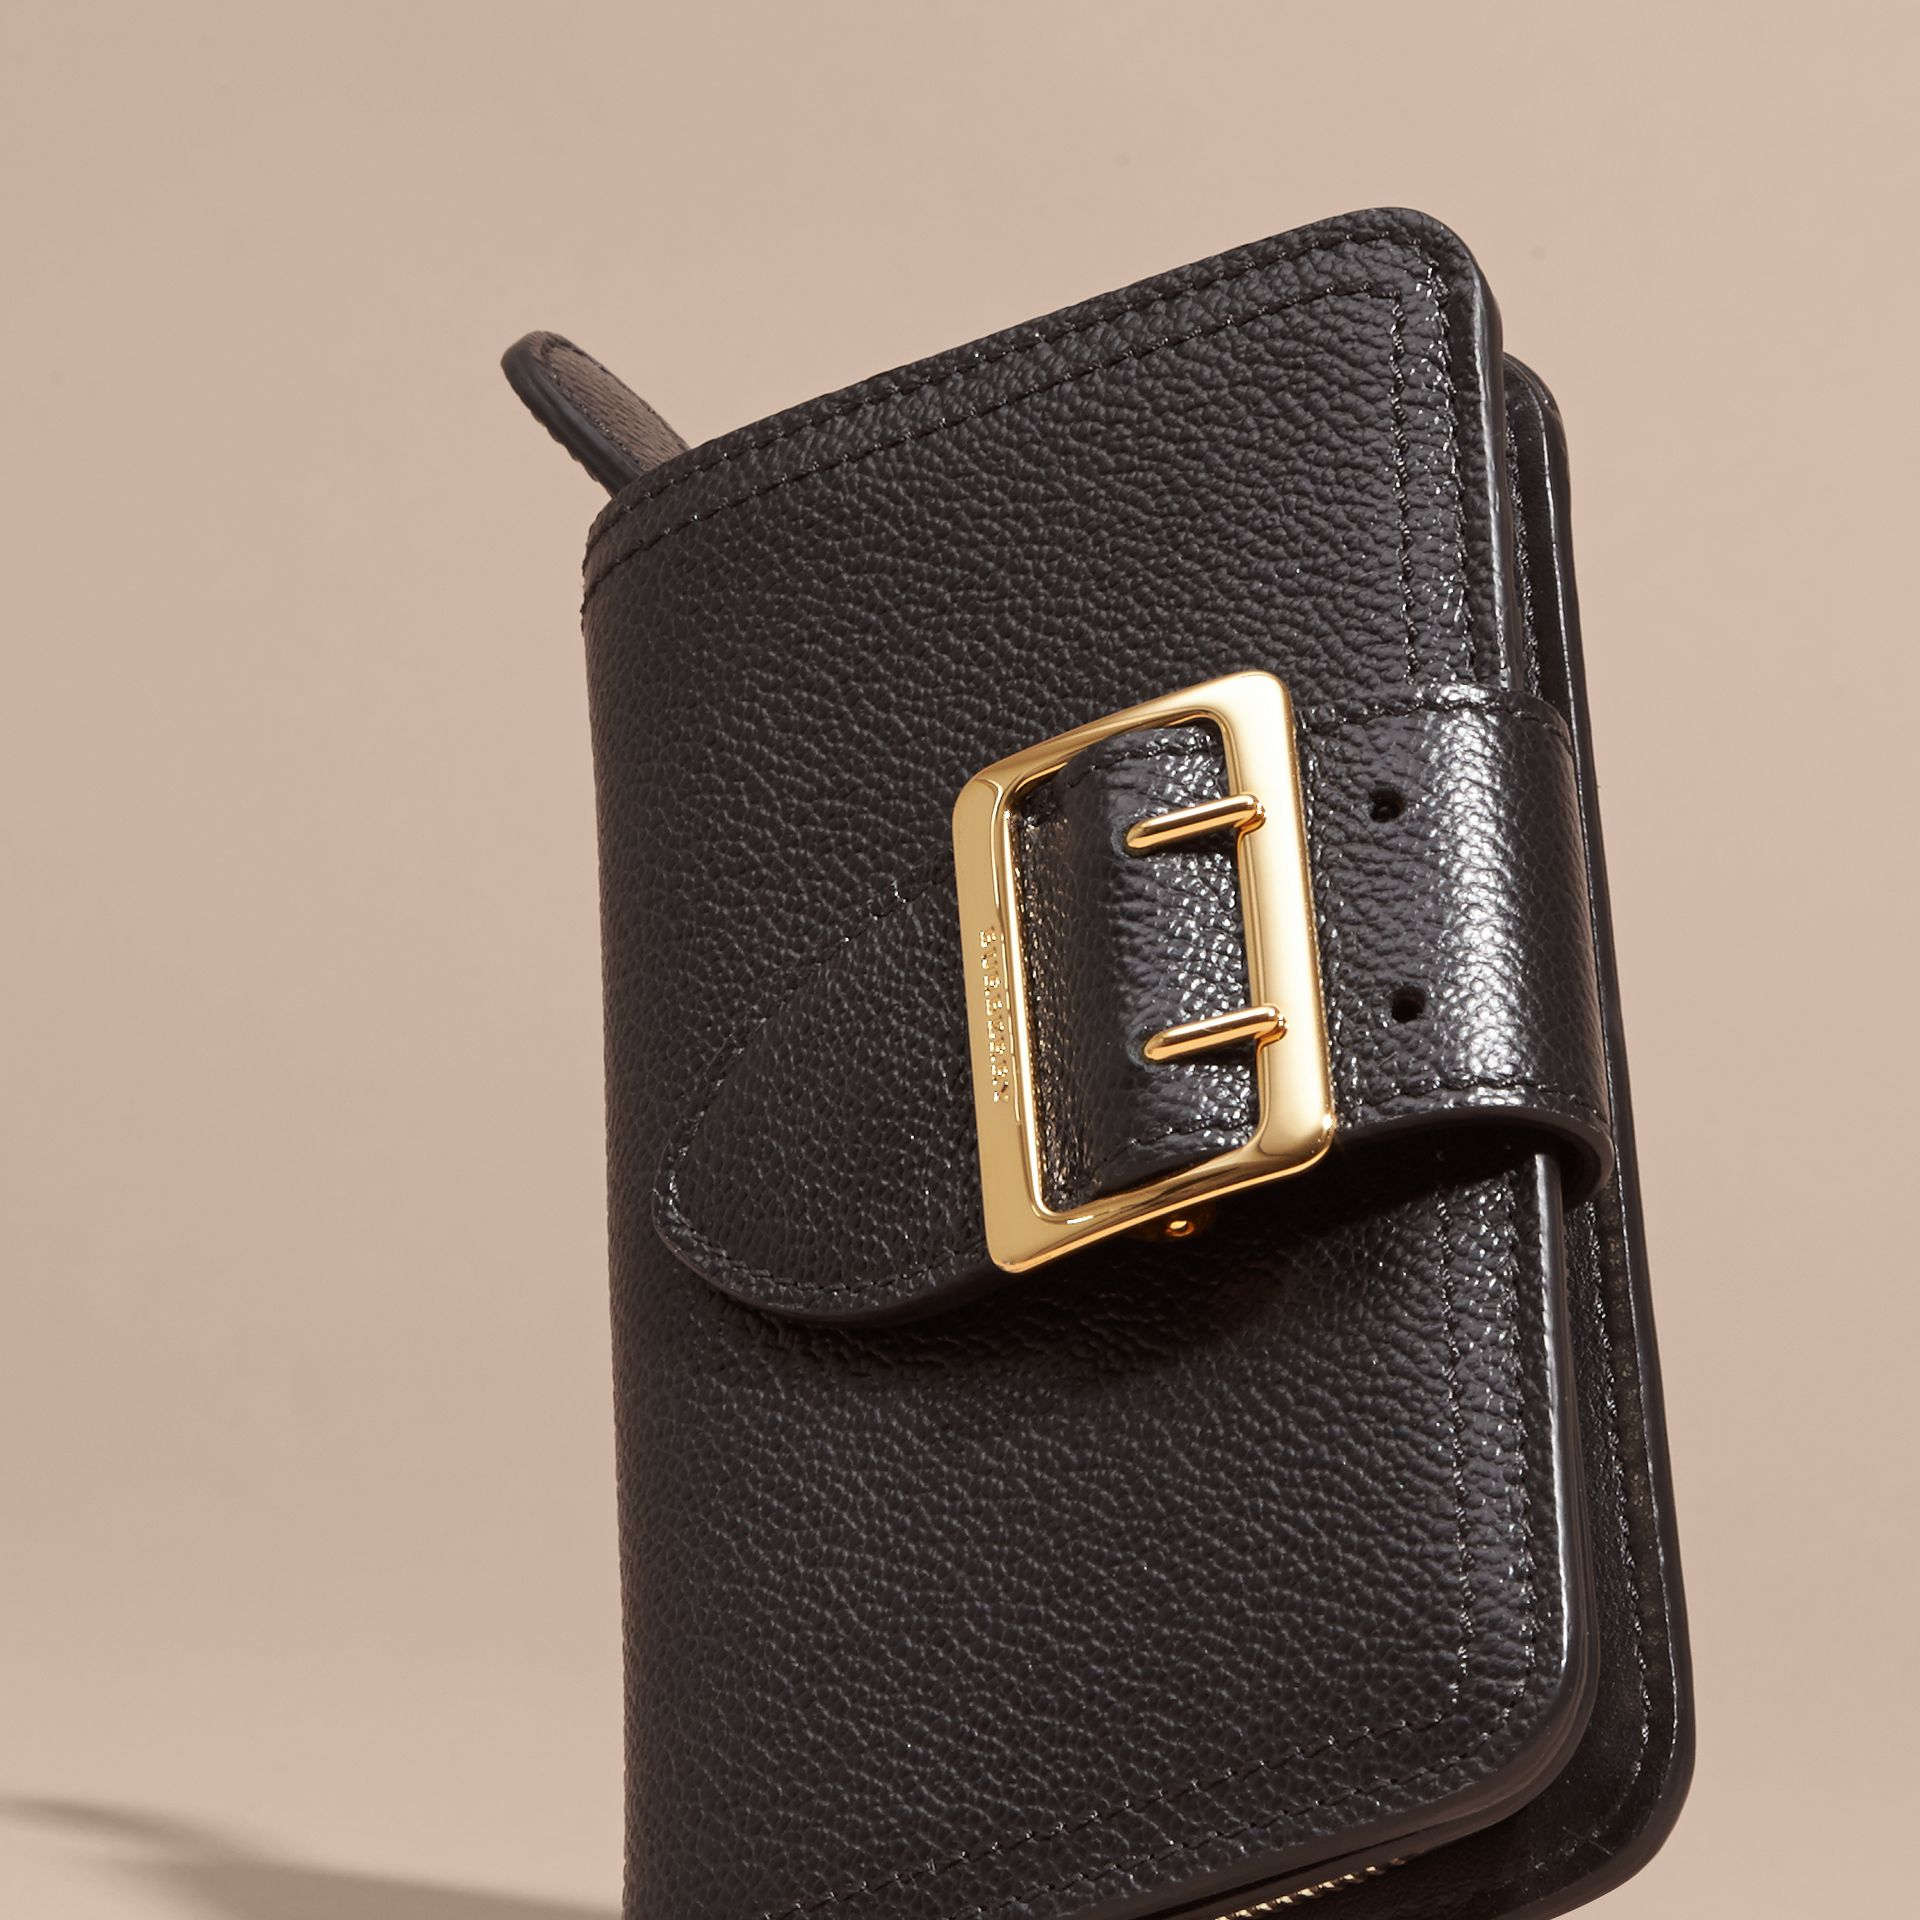 Black Buckle Detail Grainy Leather Wallet Black - gallery image 3